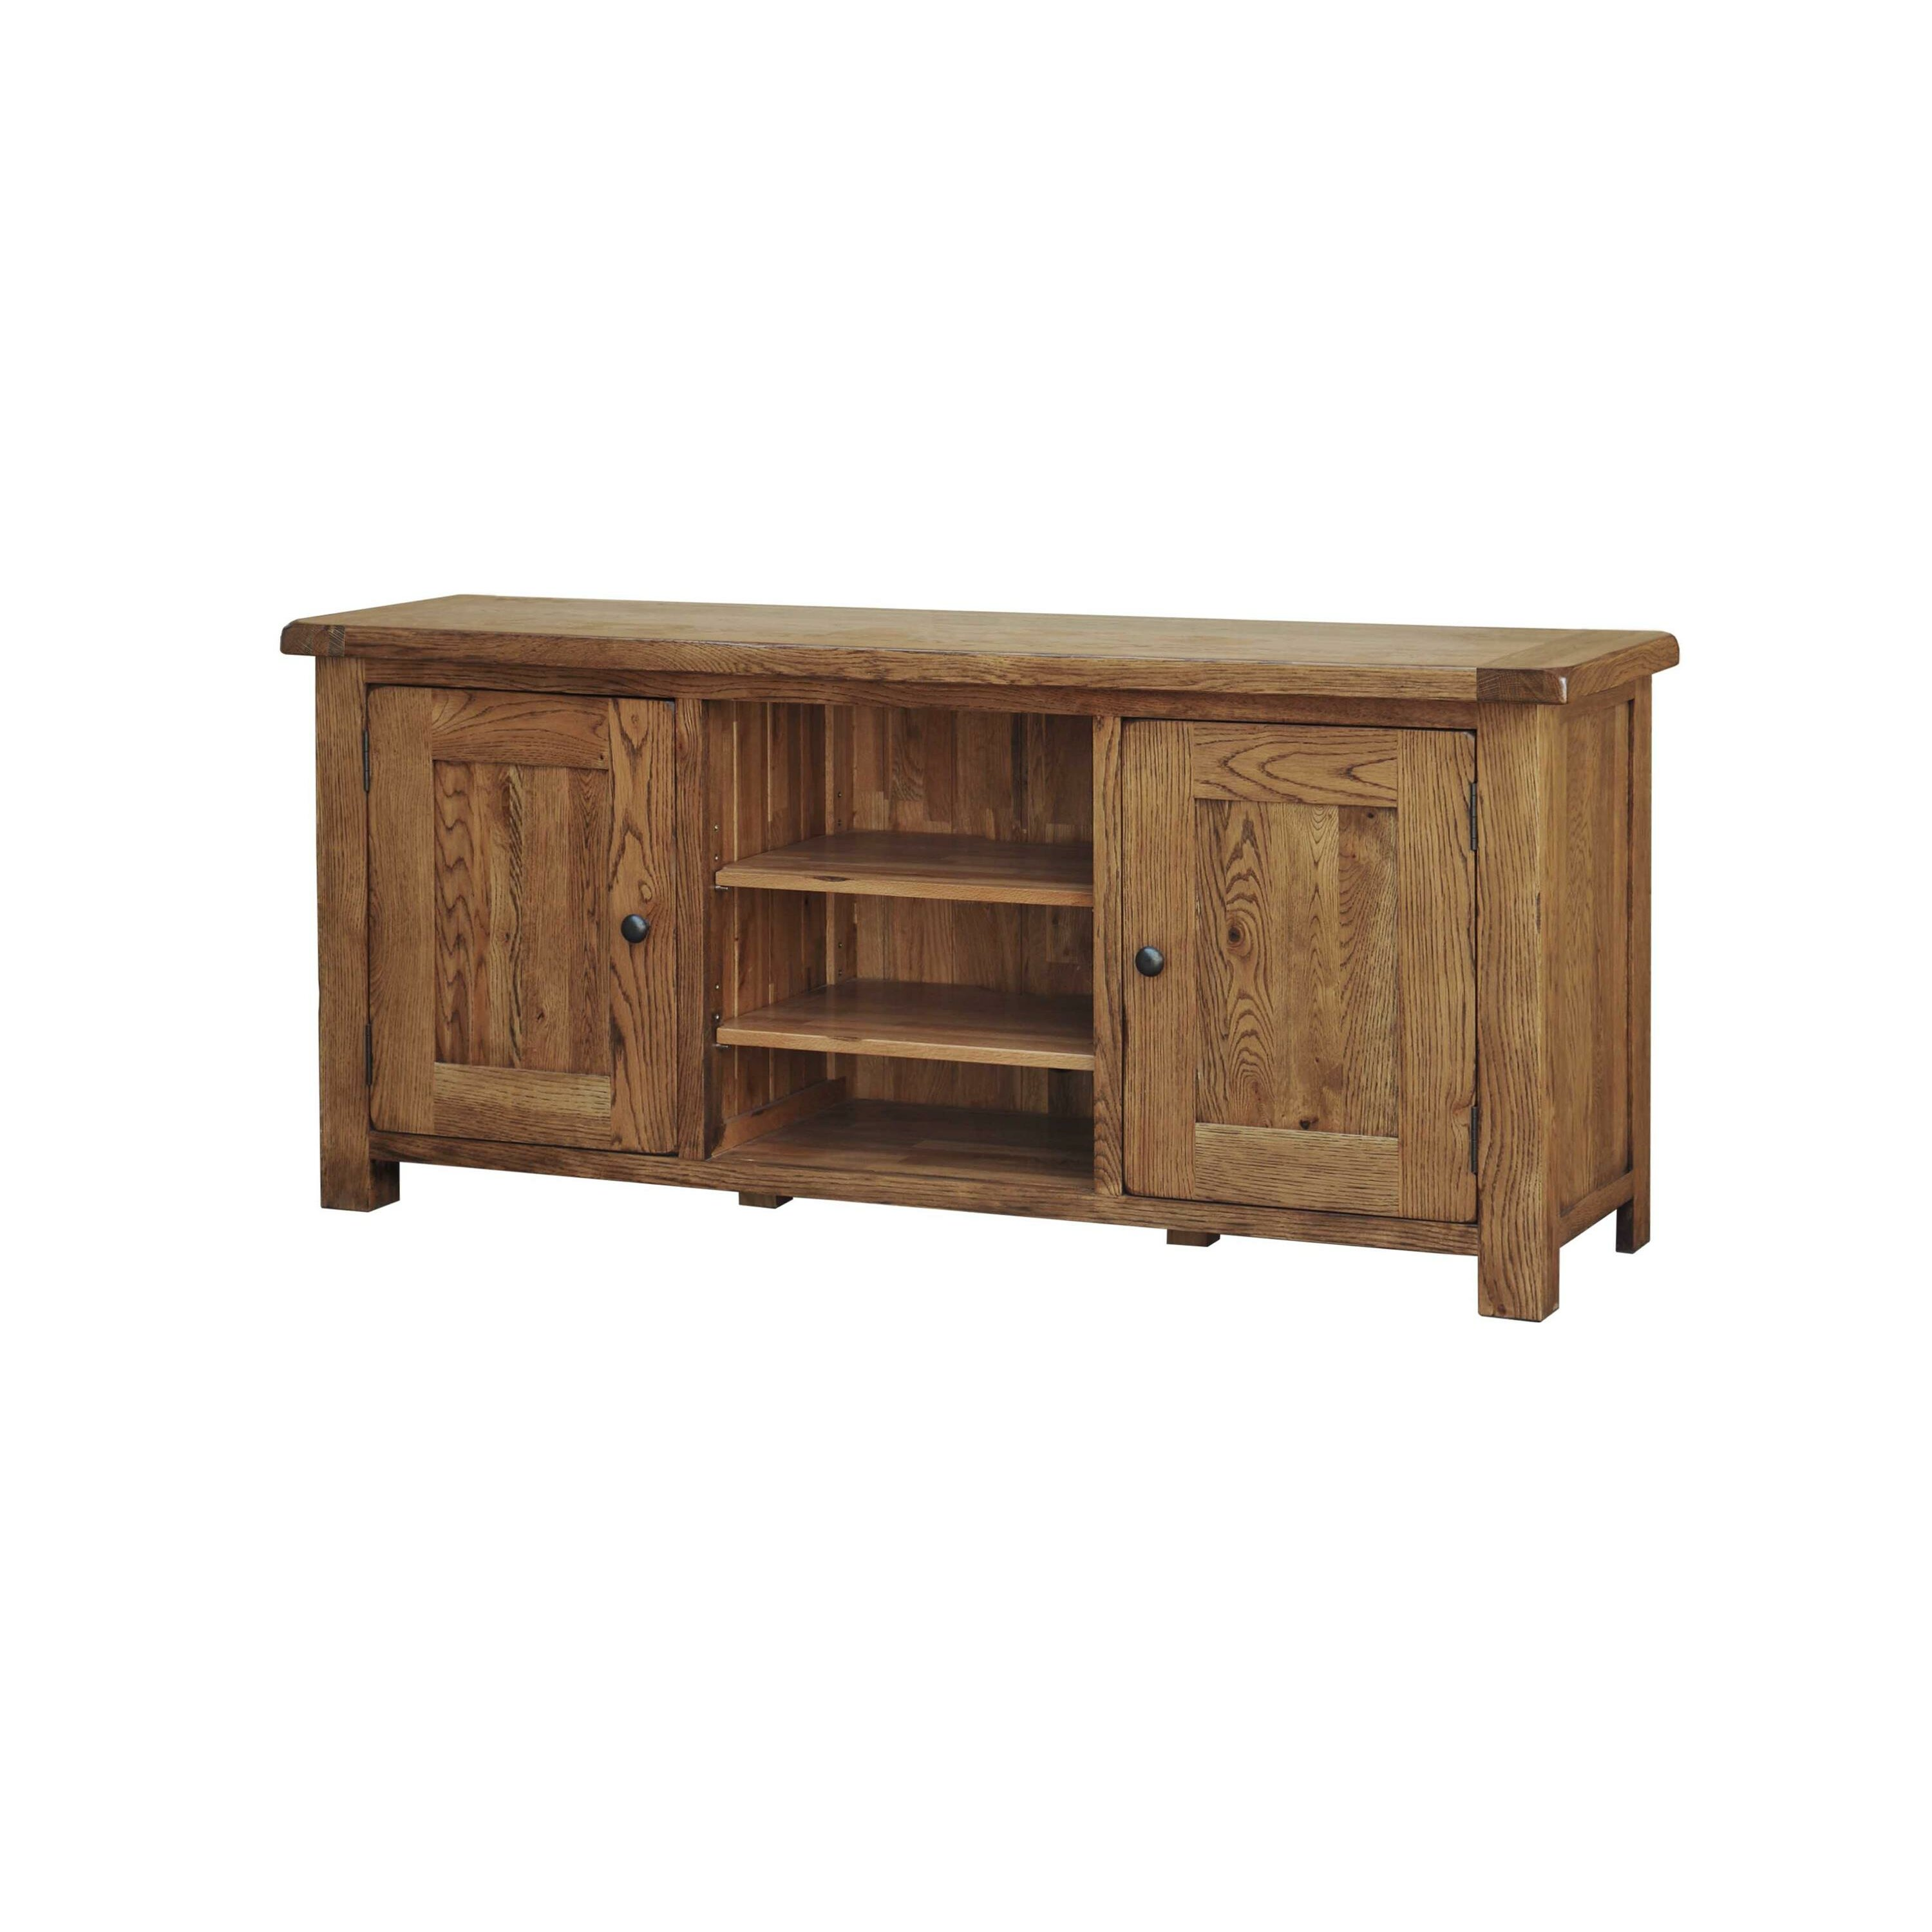 Homestead Living Rayleigh Tv Stand For Tvs Up To 57